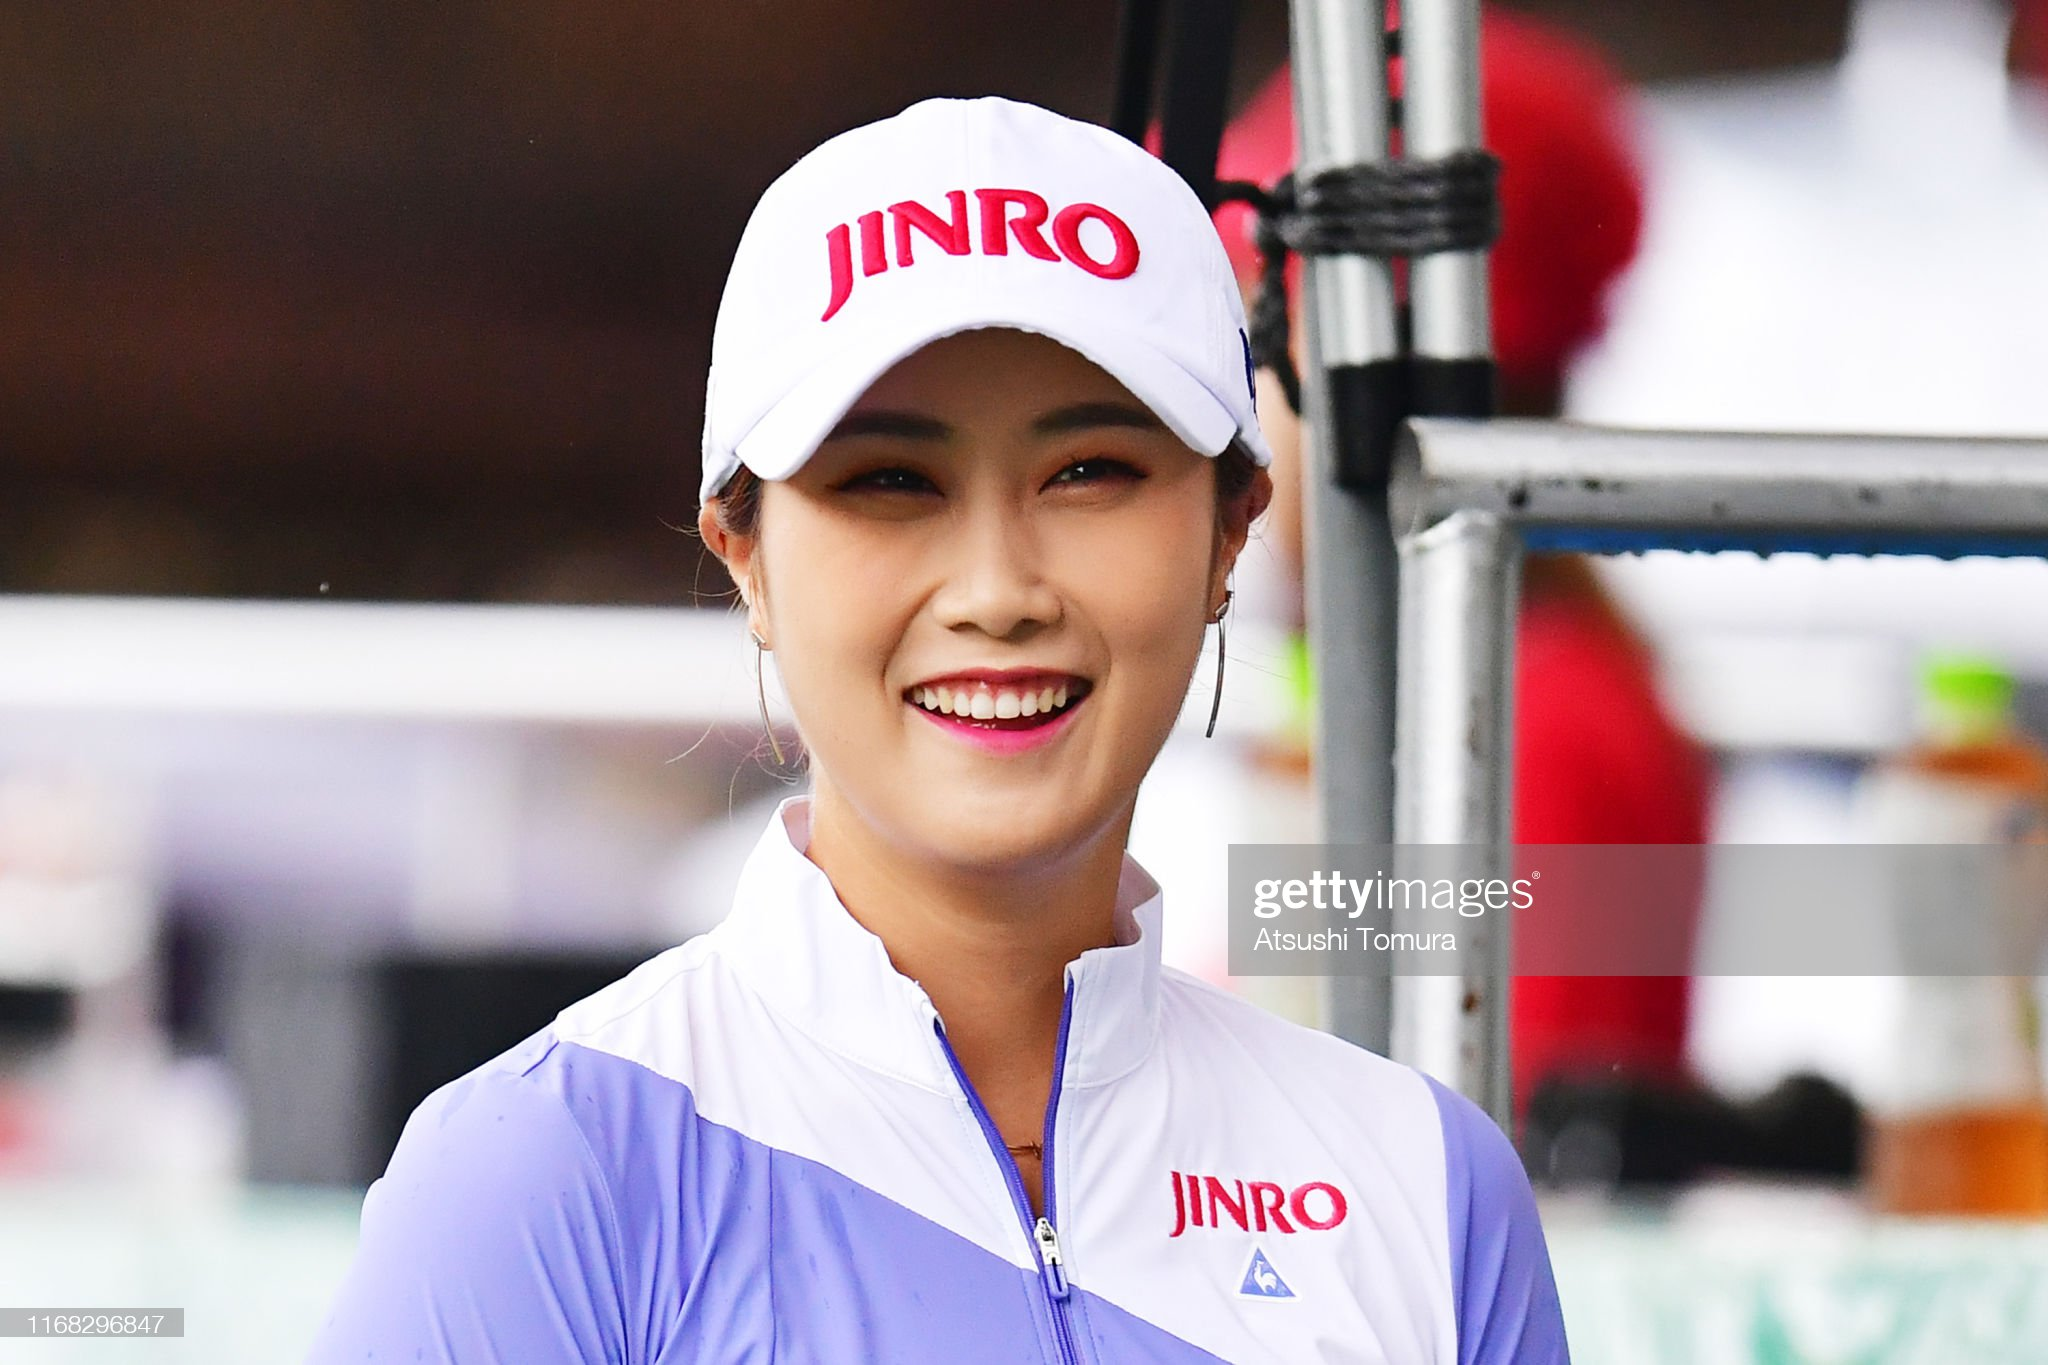 https://media.gettyimages.com/photos/haneul-kim-of-south-korea-smiles-on-the-1st-tee-during-the-first-of-picture-id1168296847?s=2048x2048